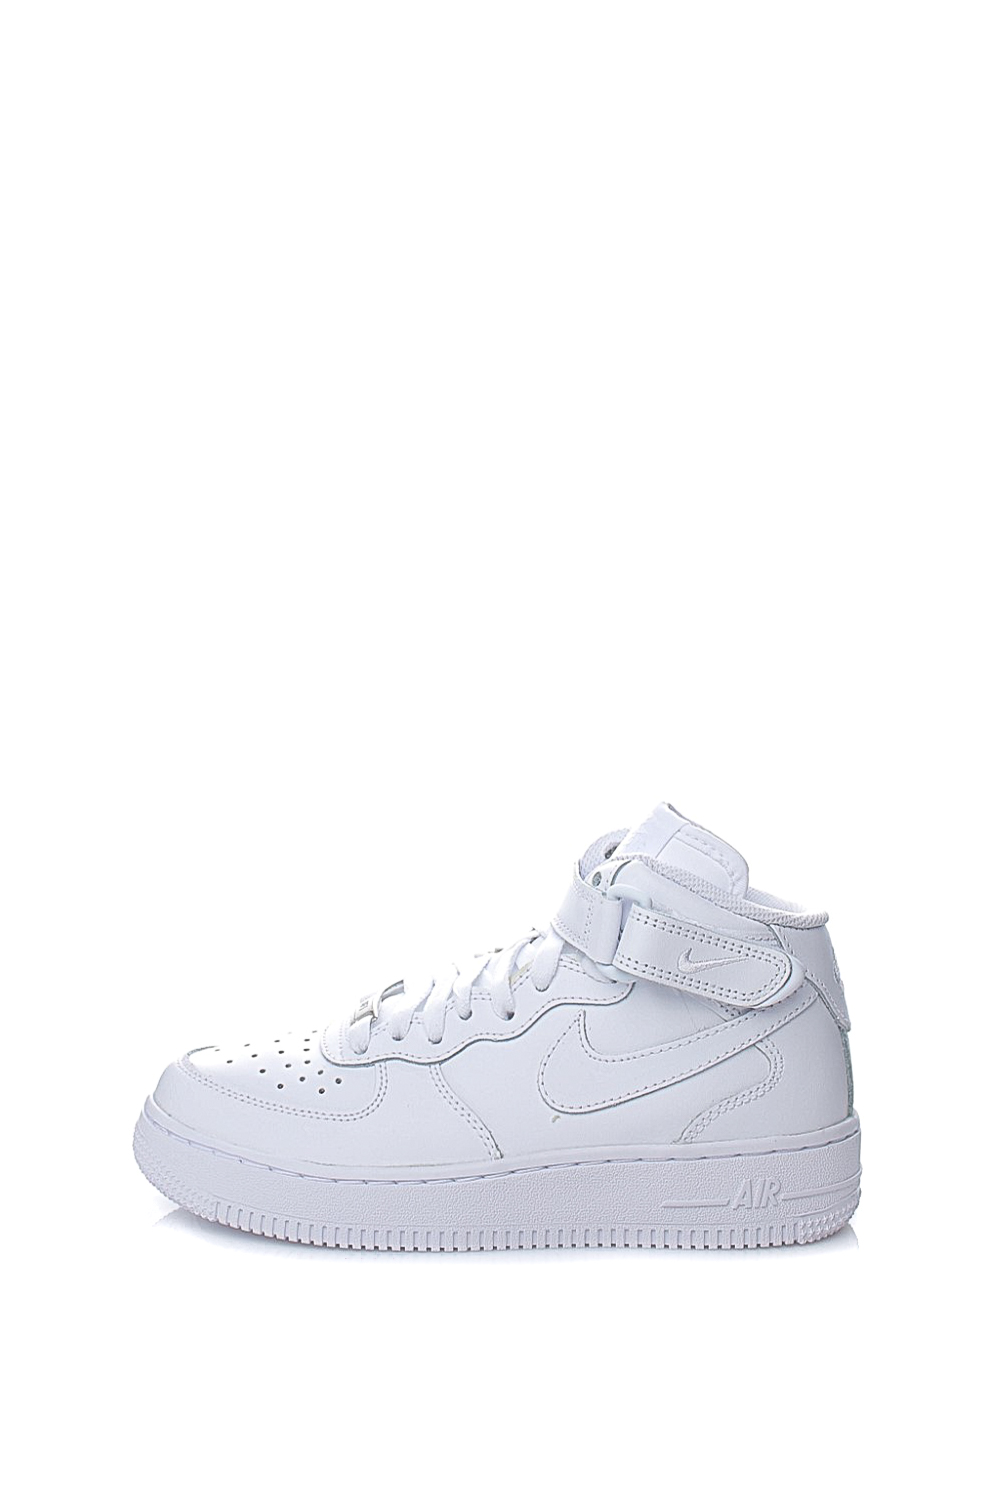 9bc23cf08e6 Collective Online NIKE – Παιδικά αθλητικά μποτάκια AIR FORCE 1 MID λευκά